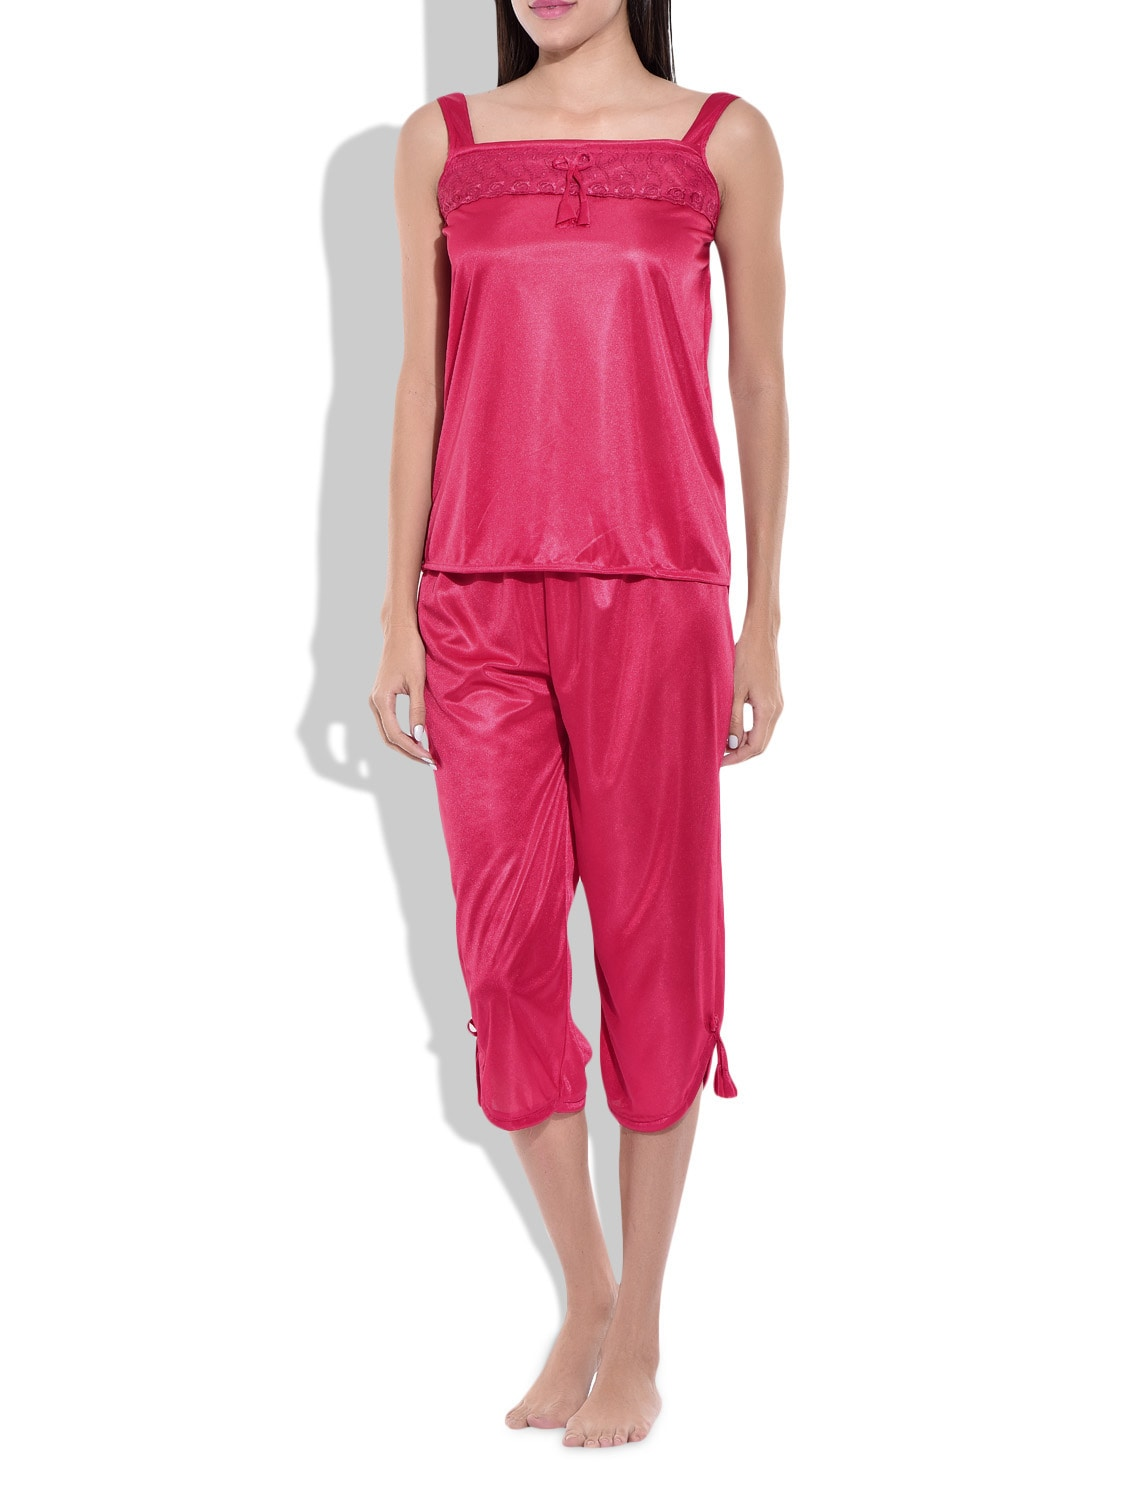 46f0b61e9 Buy Red Poly Satin Nightwear Set for Women from Klamotten for ₹386 at 57%  off